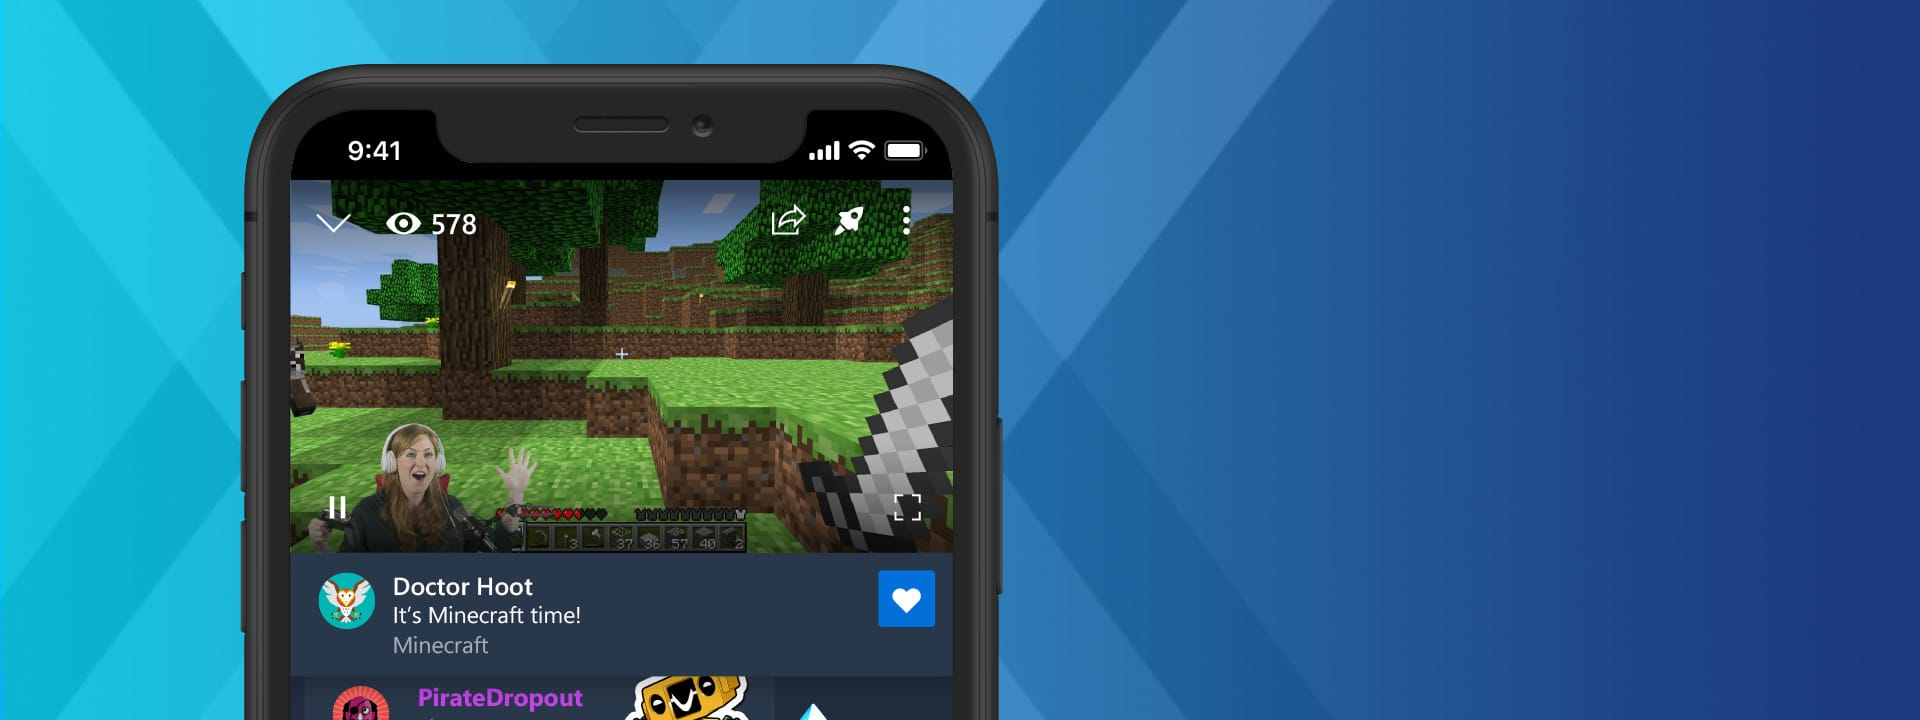 Mobile phone displaying a Minecraft Mixer stream on a blue background